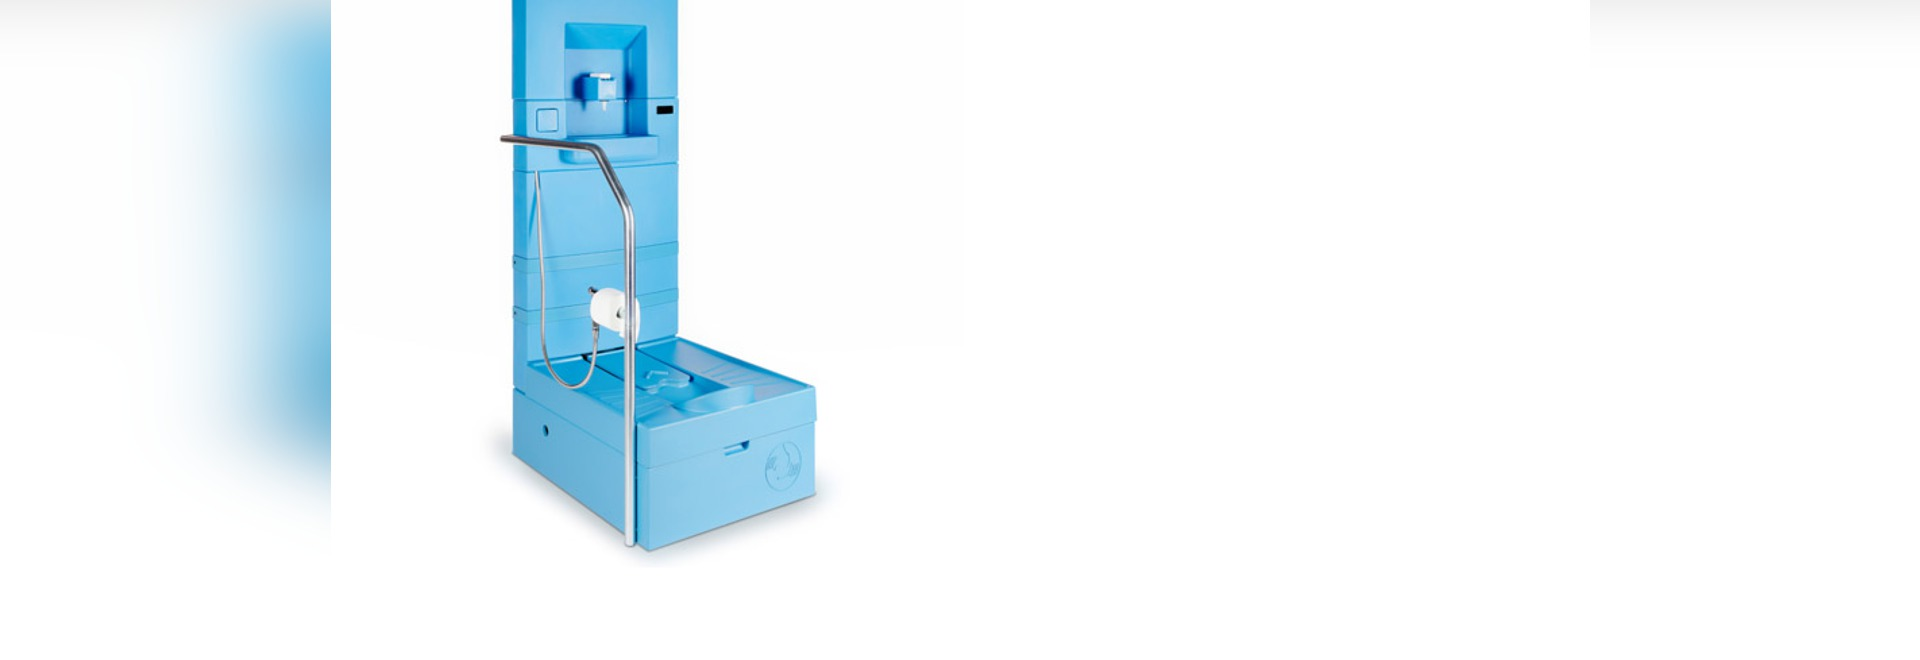 Blue Diversion Toilet aims to improve sanitation with built-in filtration system